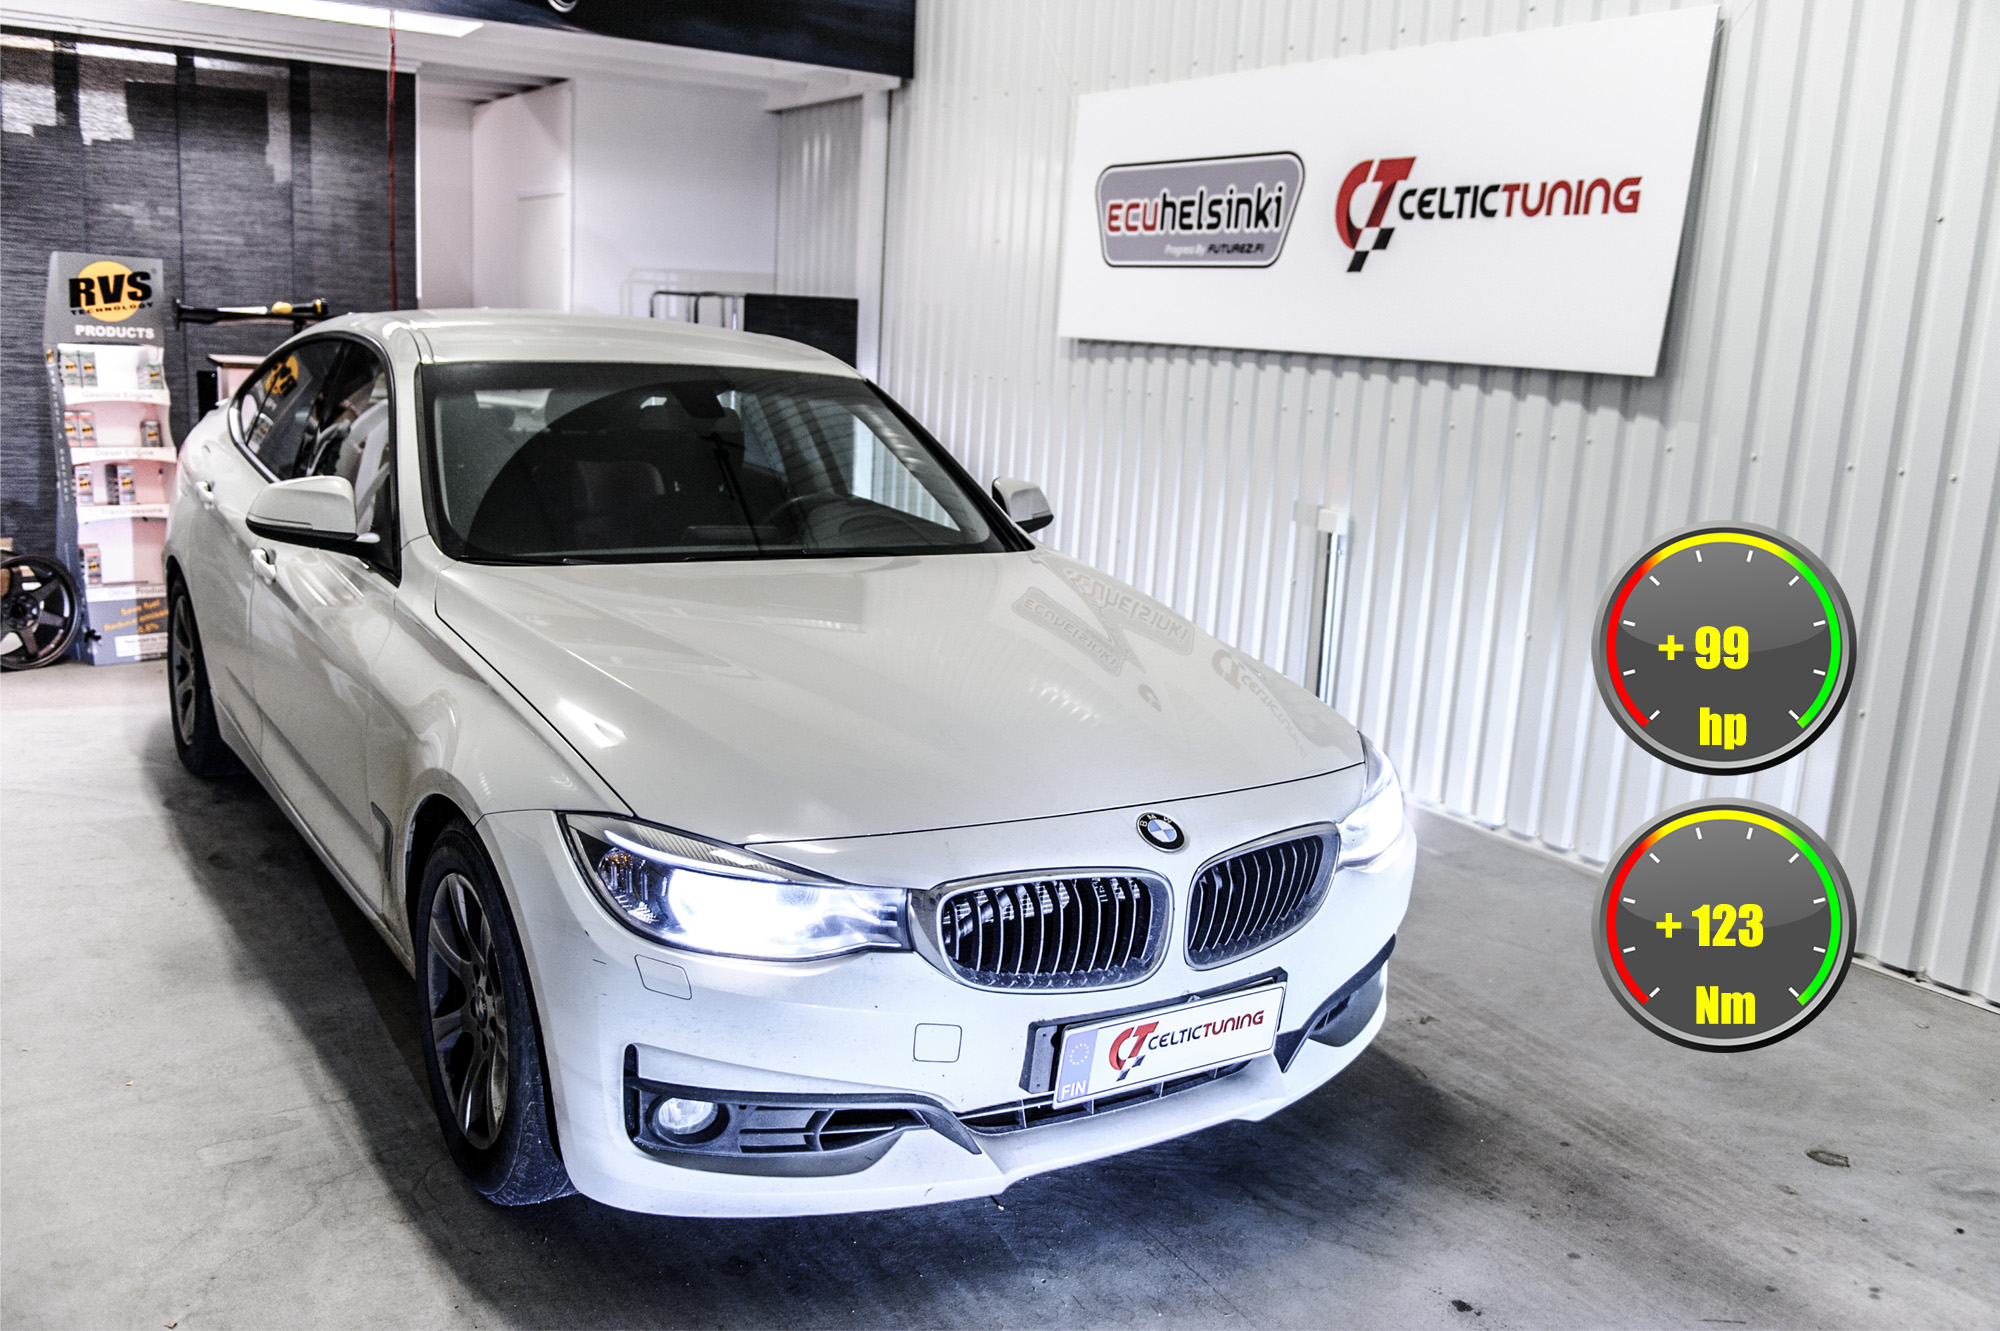 BMW 320i GT optimointi celtic tuning